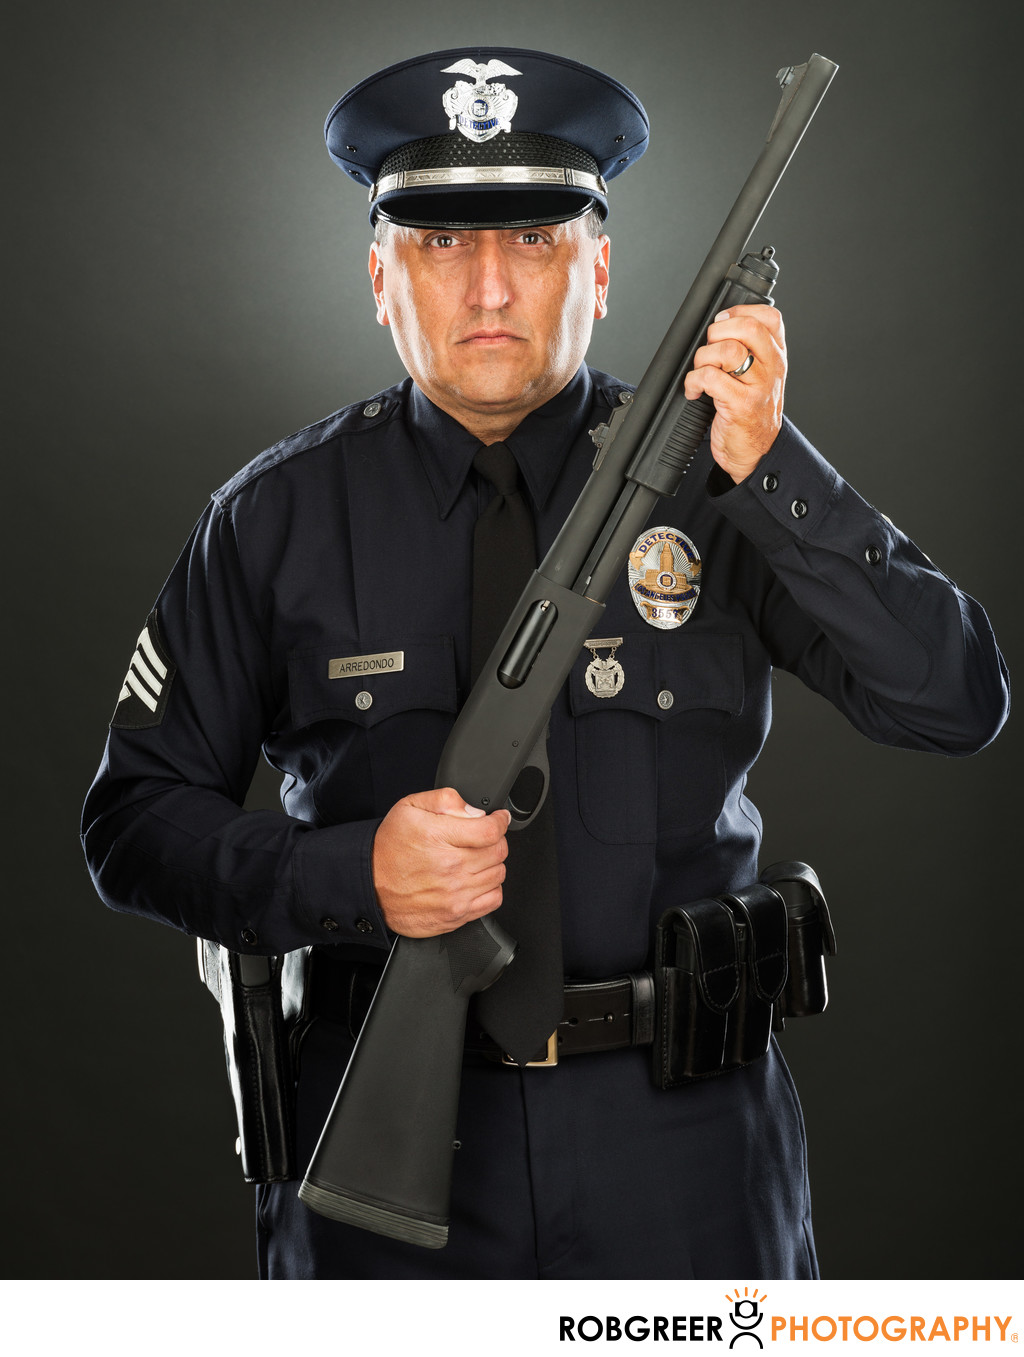 Alex Arredondo, Los Angeles Police Officer